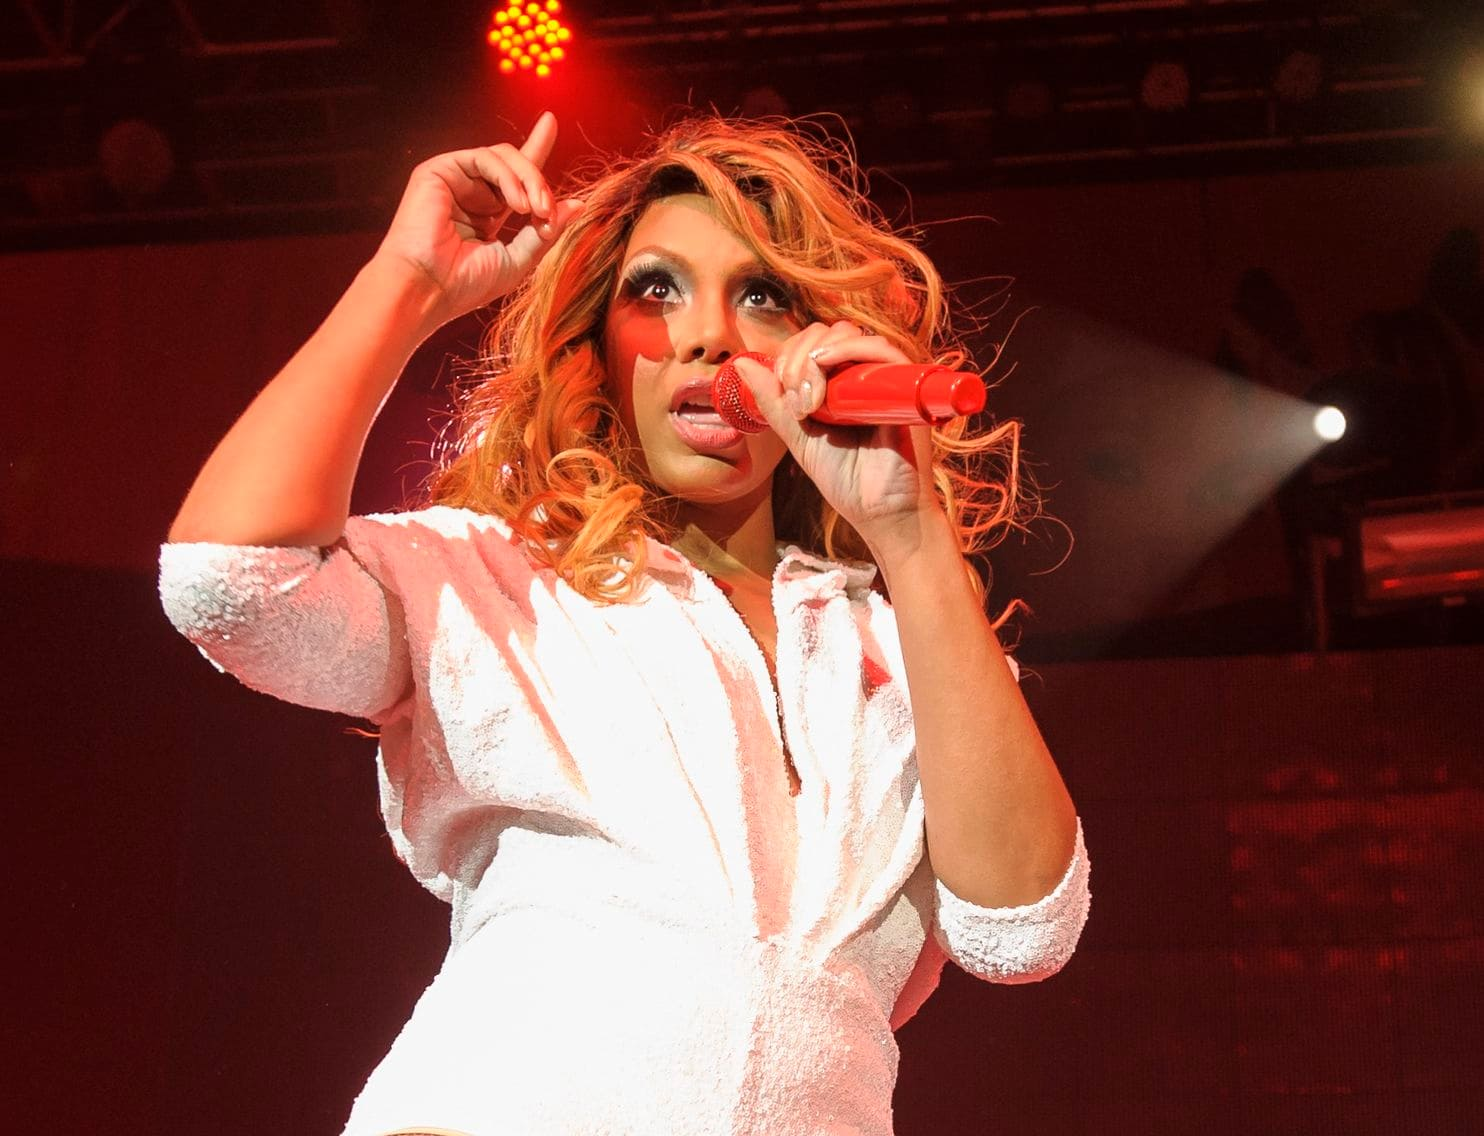 Tamar Braxton Praises Single Moms And Shares The Cutest Photo With Her Son, Logan